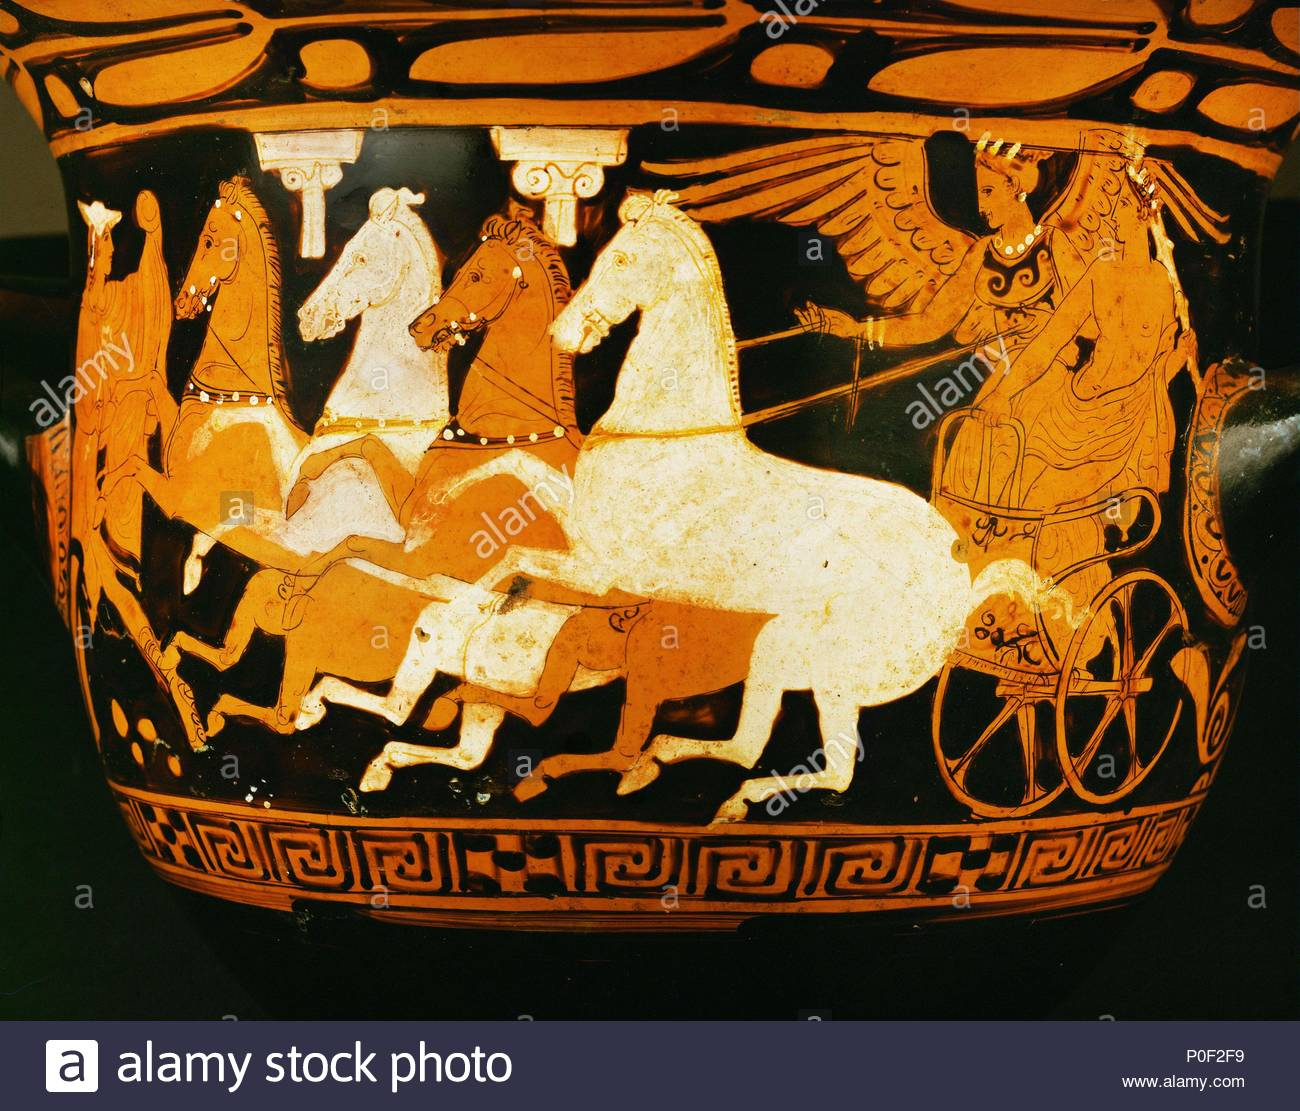 Heracles ascending to Olympos in a horse-drawn chariot. Red-figured bell crater, Attic (400 BCE). Height 38.1 cm-Diameter 39.1 cm Inv. IV 933. Location: Kunsthistorisches Museum, Antikensammlung, Vienna, Austria. - Stock Image